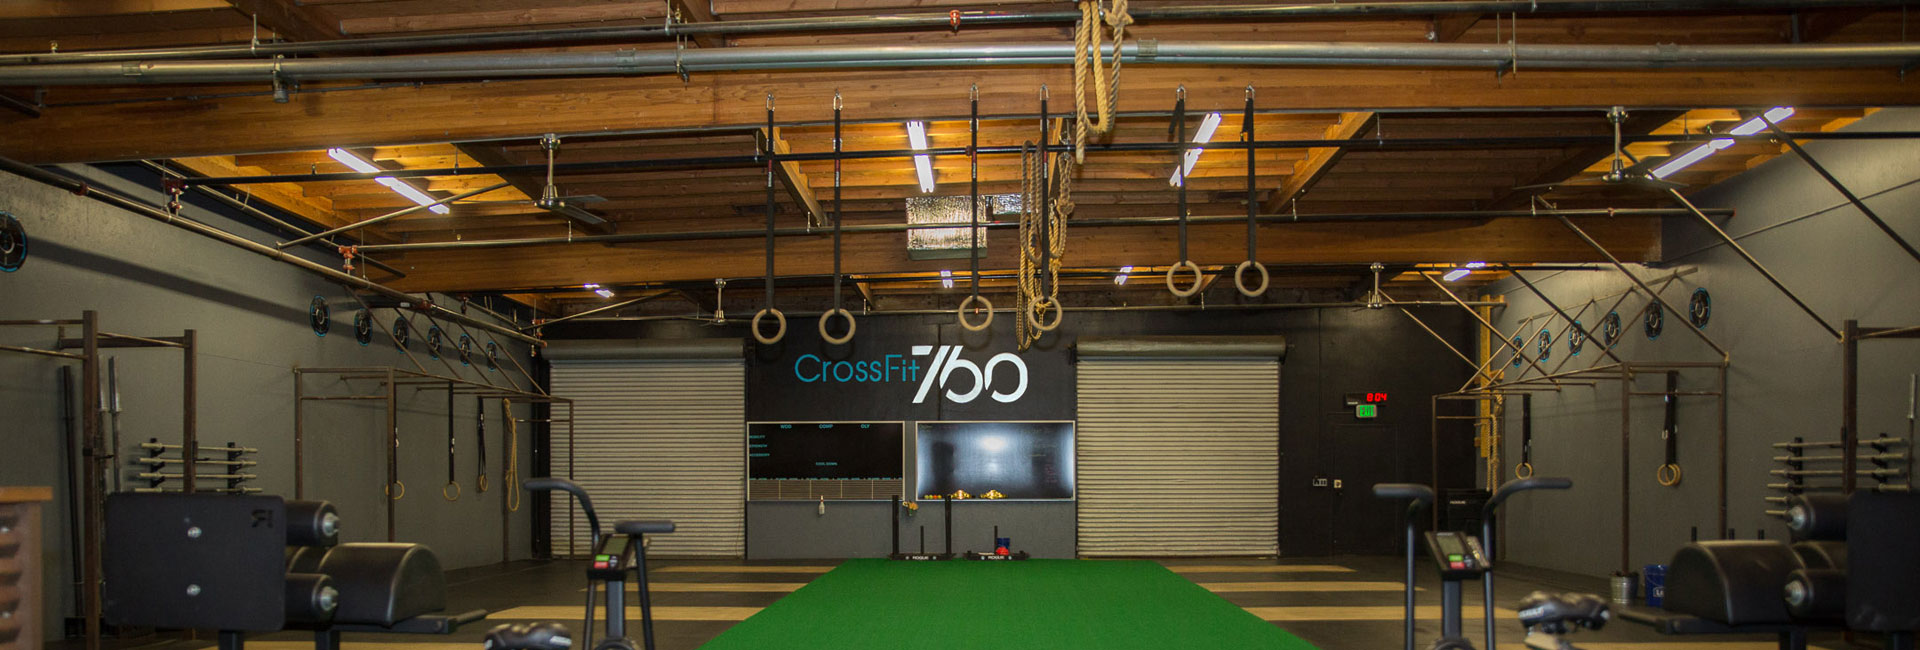 Crossfit 760 Locations